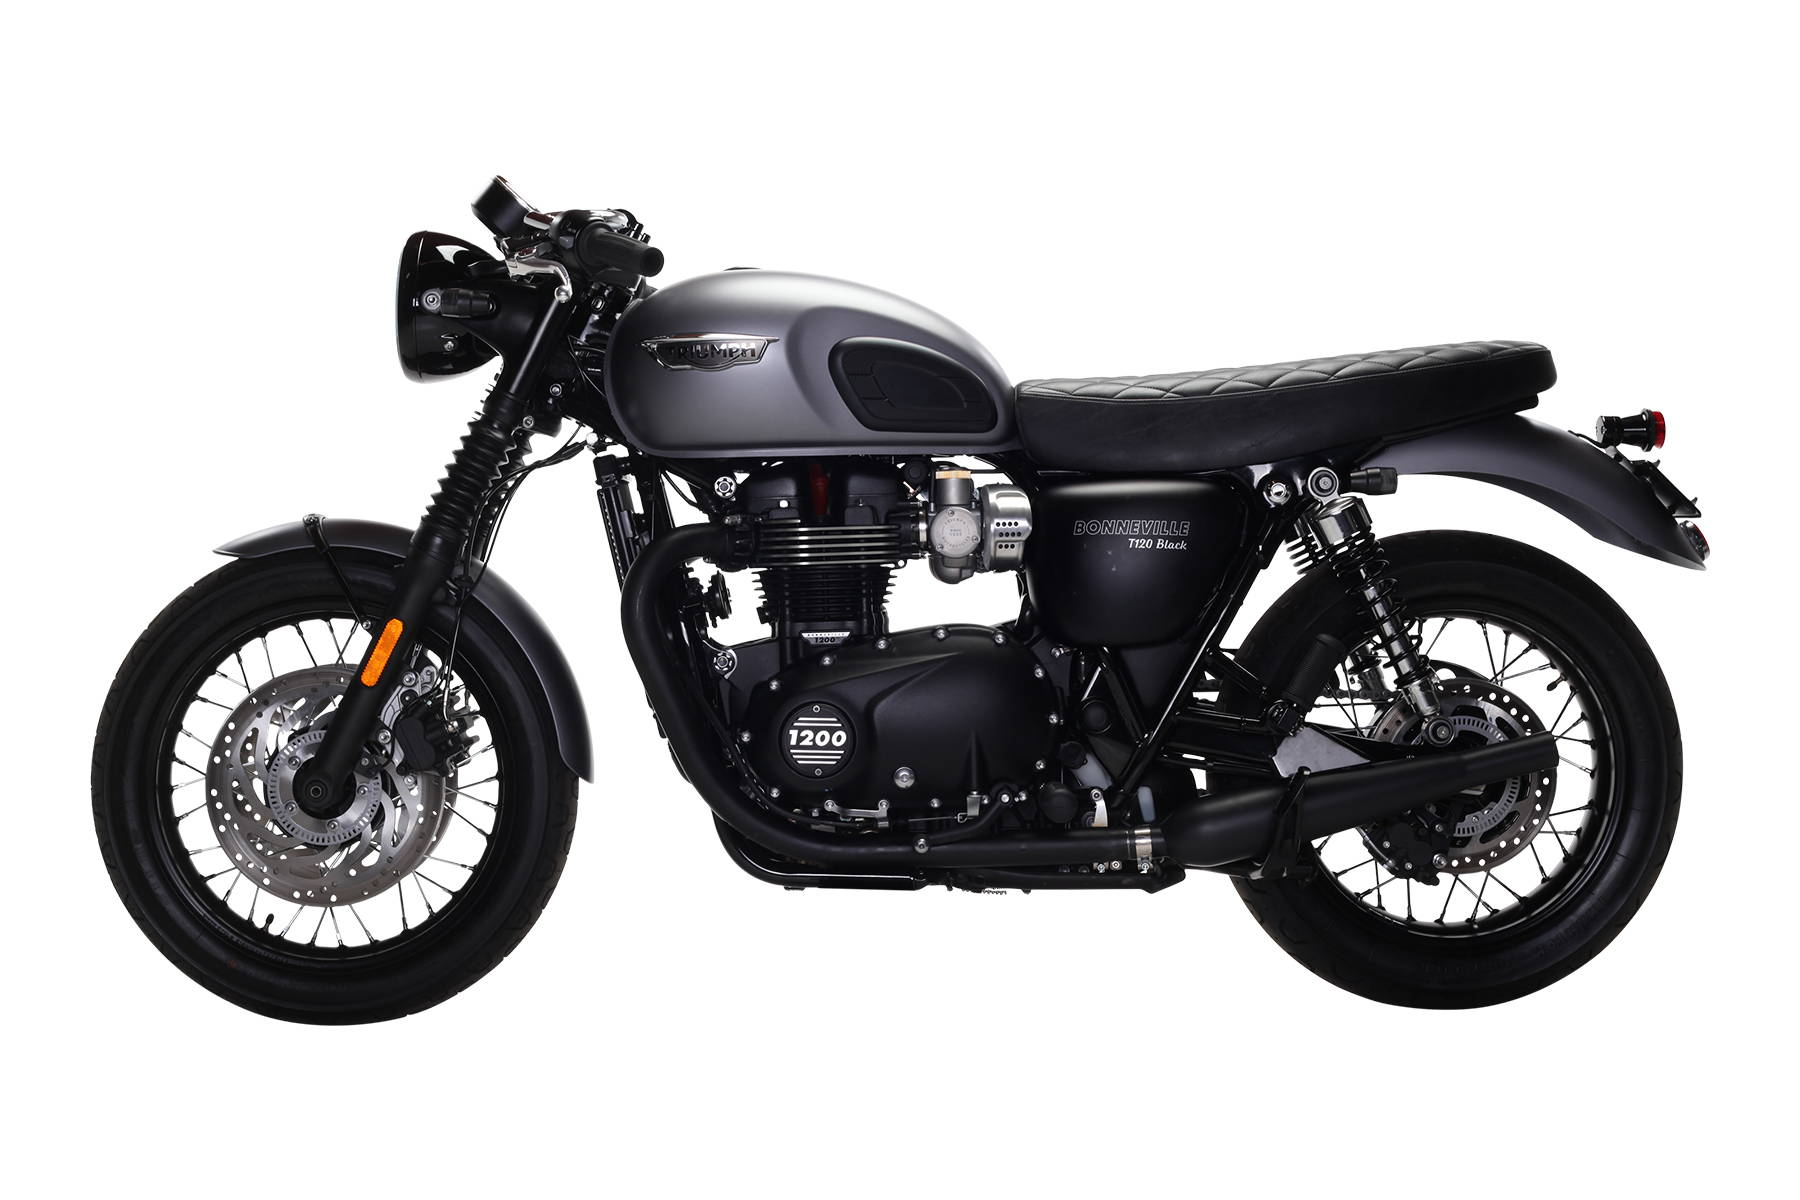 Triumph Bonneville T120 Black Matte Grey British Customs